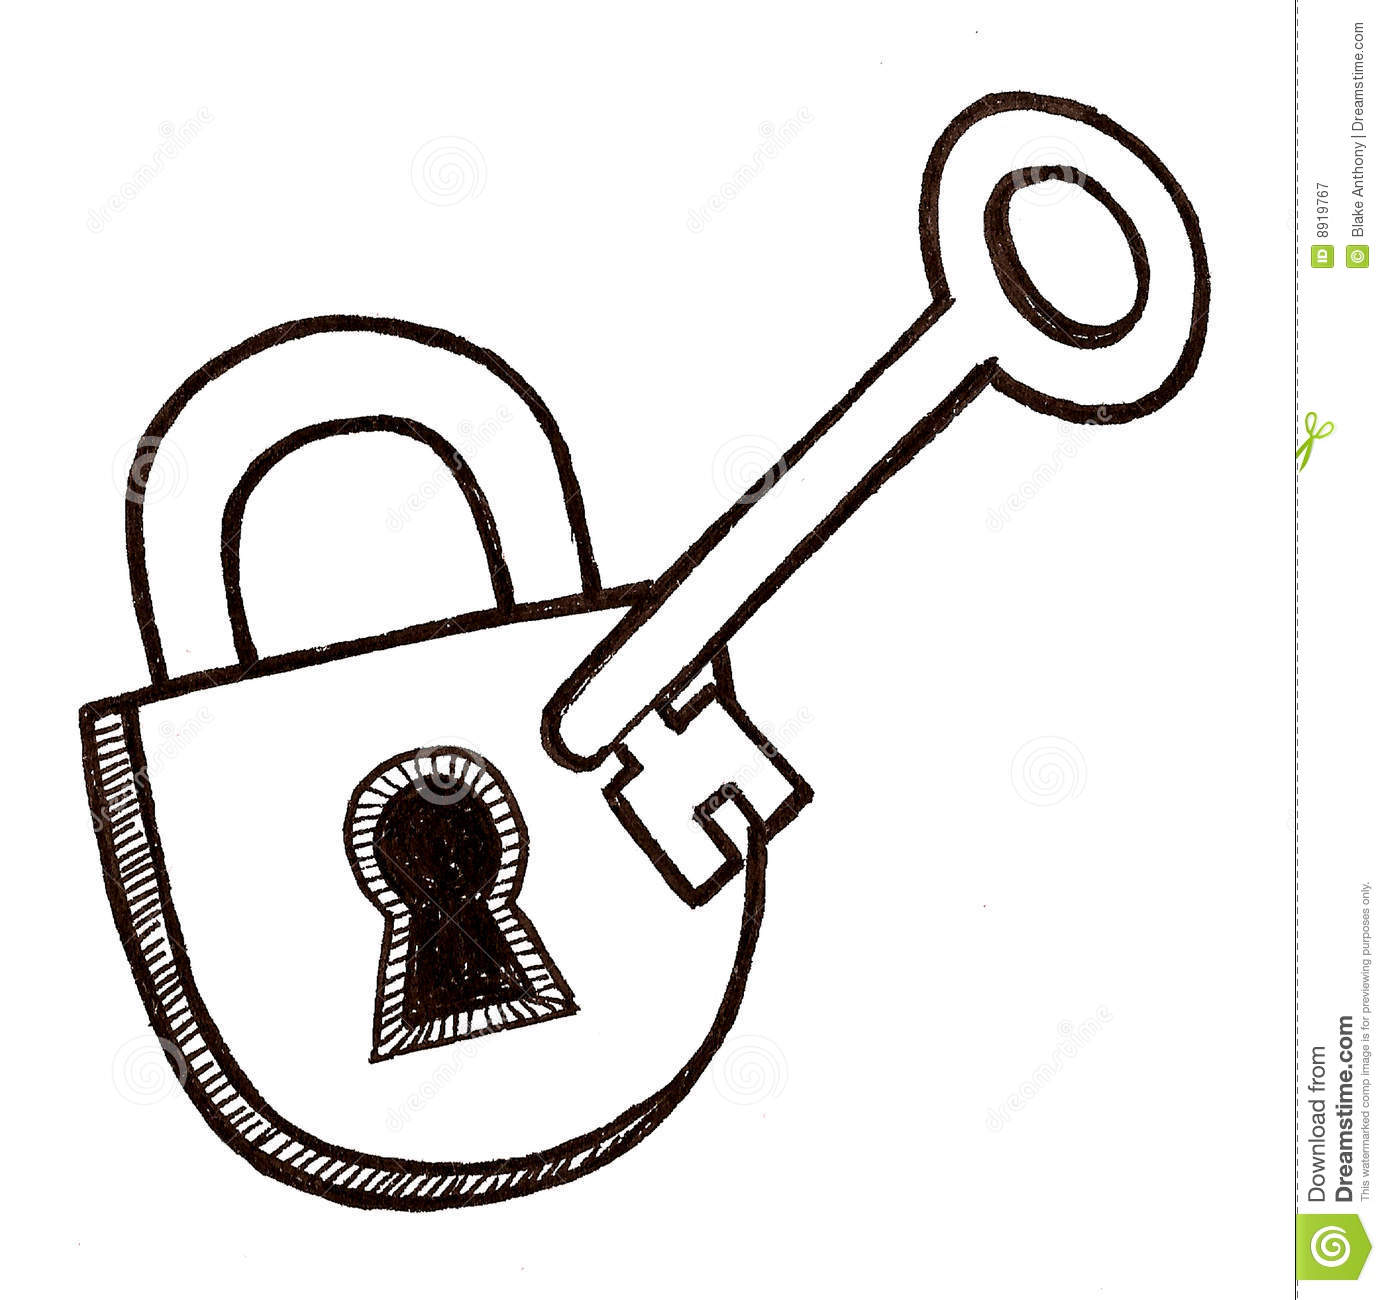 Unlock clipart black and white image freeuse library Animated Key Cliparts | Free download best Animated Key Cliparts on ... image freeuse library